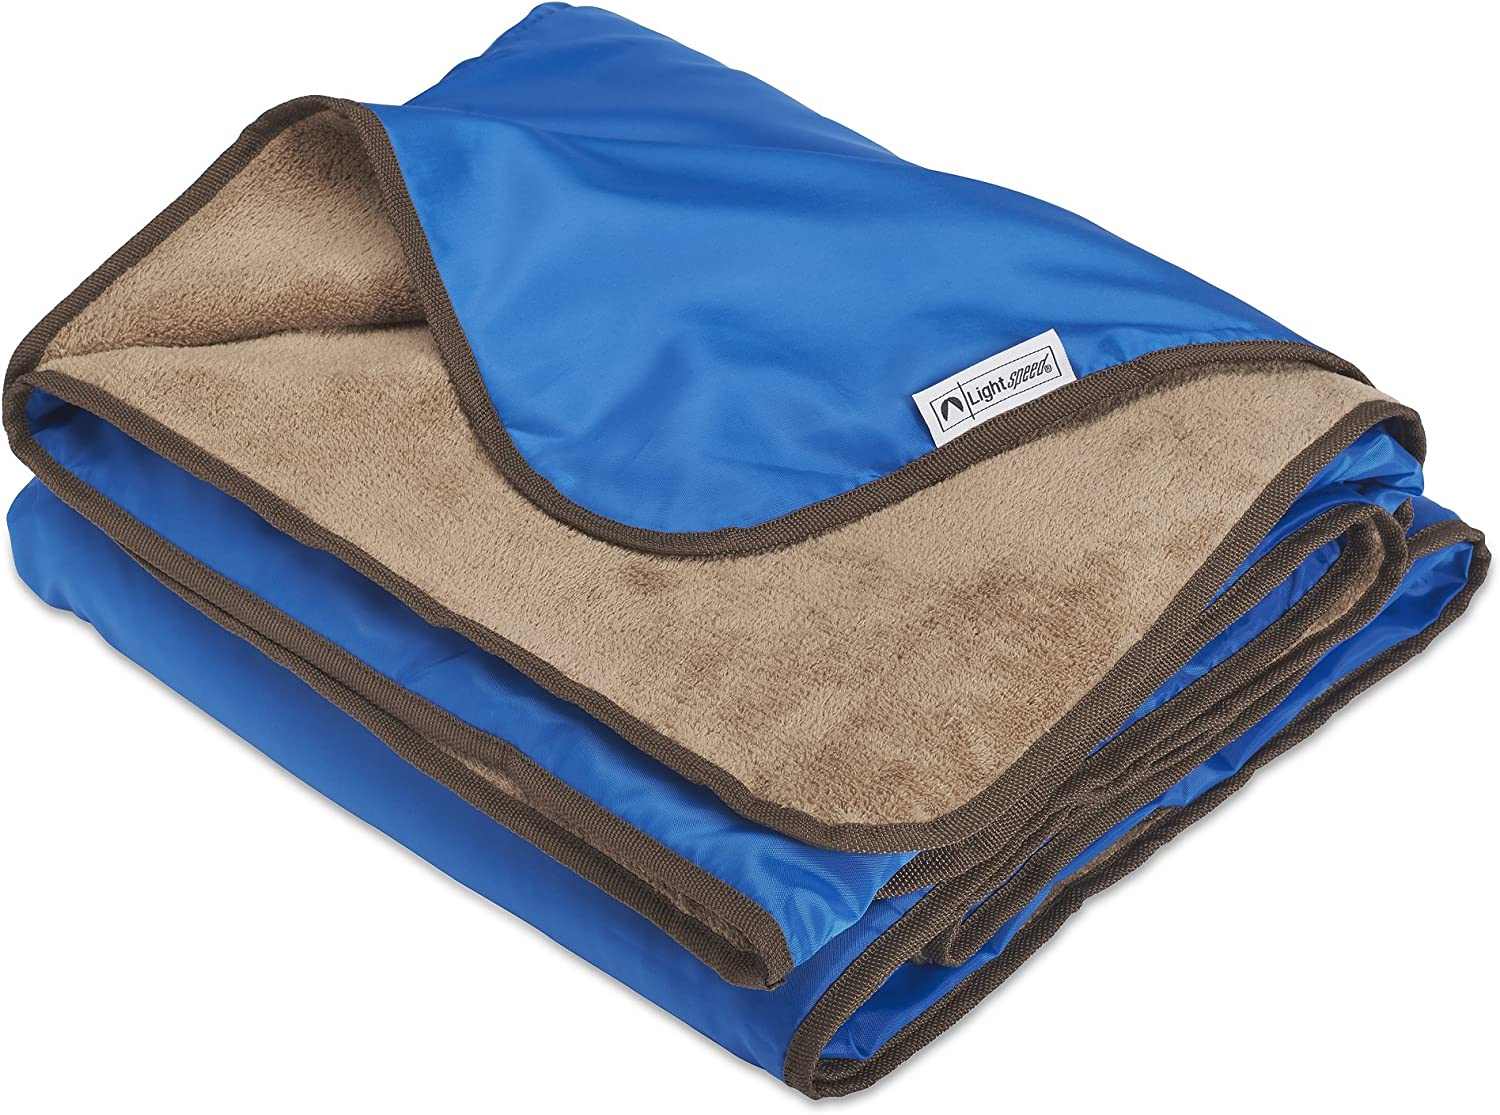 Lined With Flannel Camping Picnic BYENE Outdoor Windproof Waterproof Blanket With Hooded Suitable for Stadium